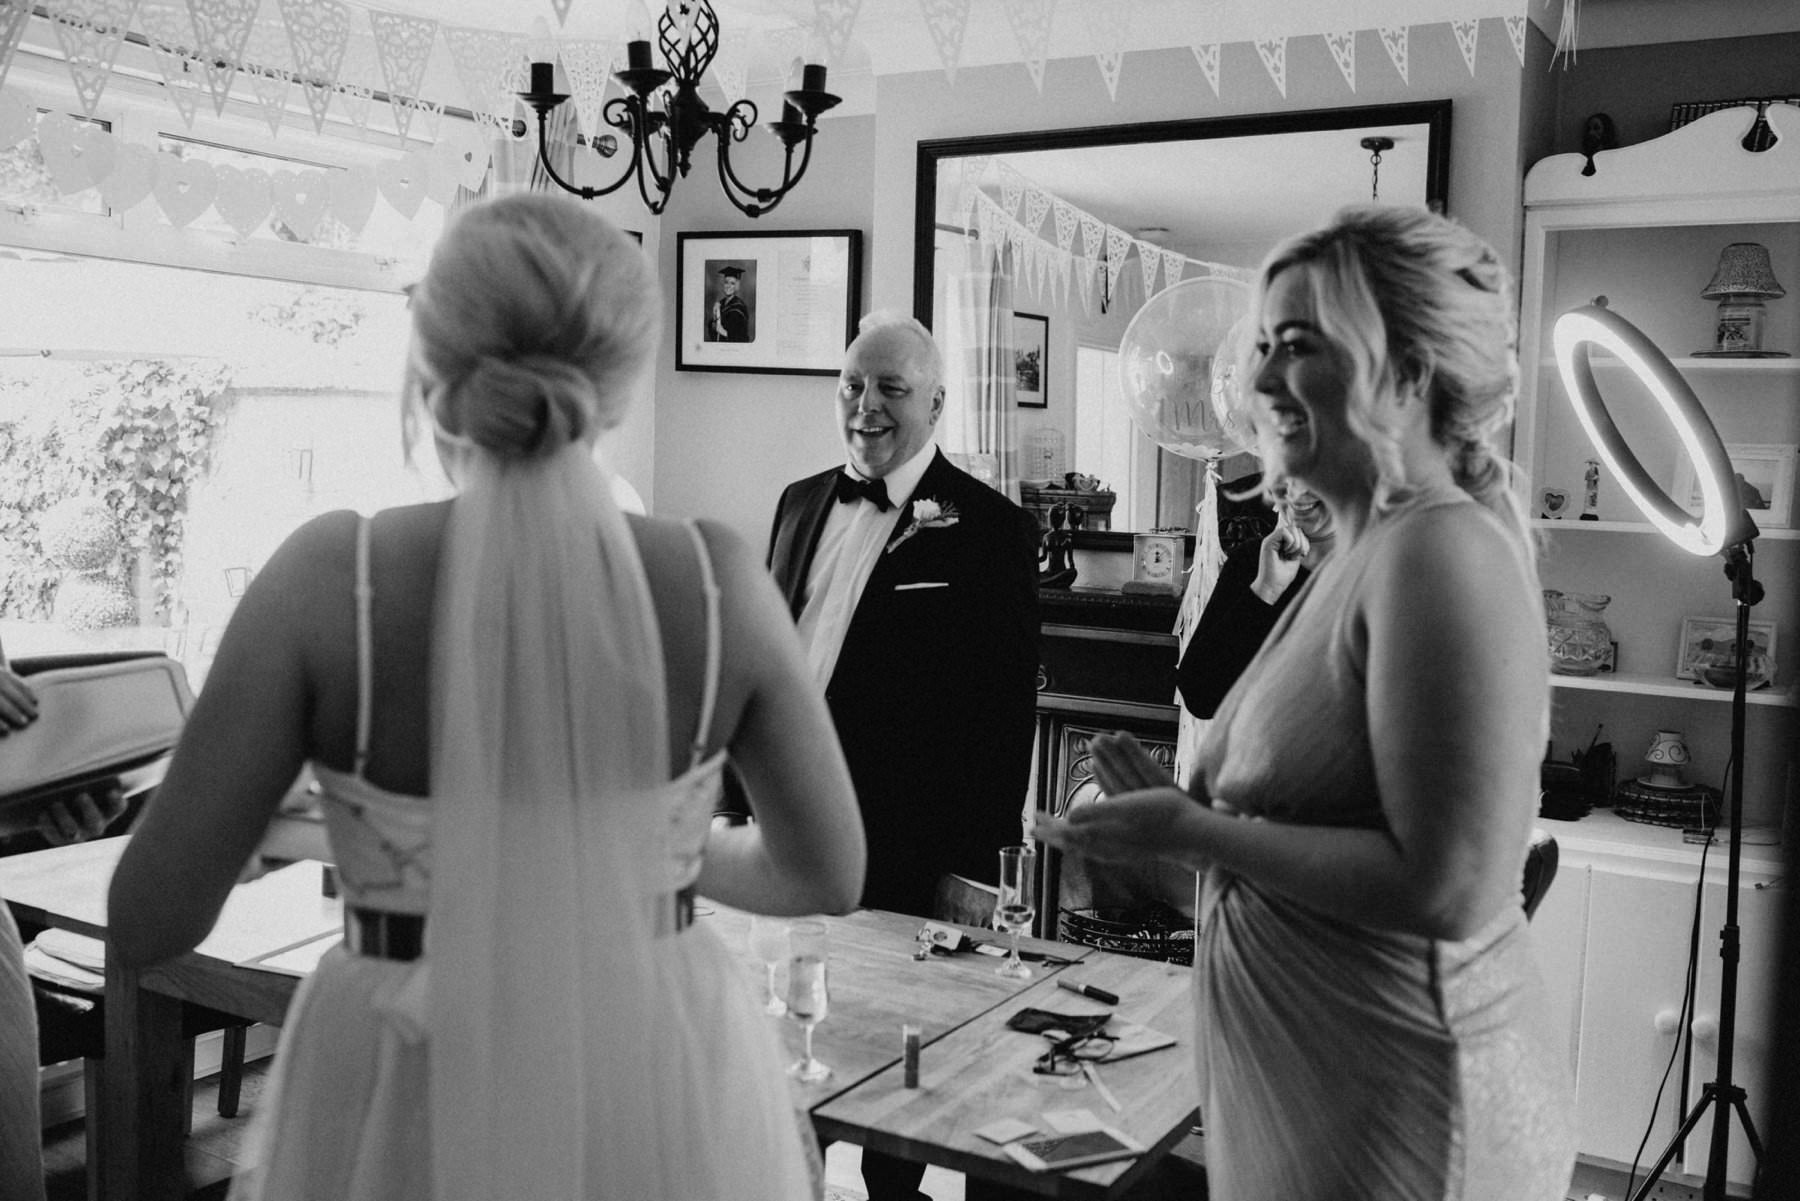 a proud father sees his daughter in her wedding dress for the first time